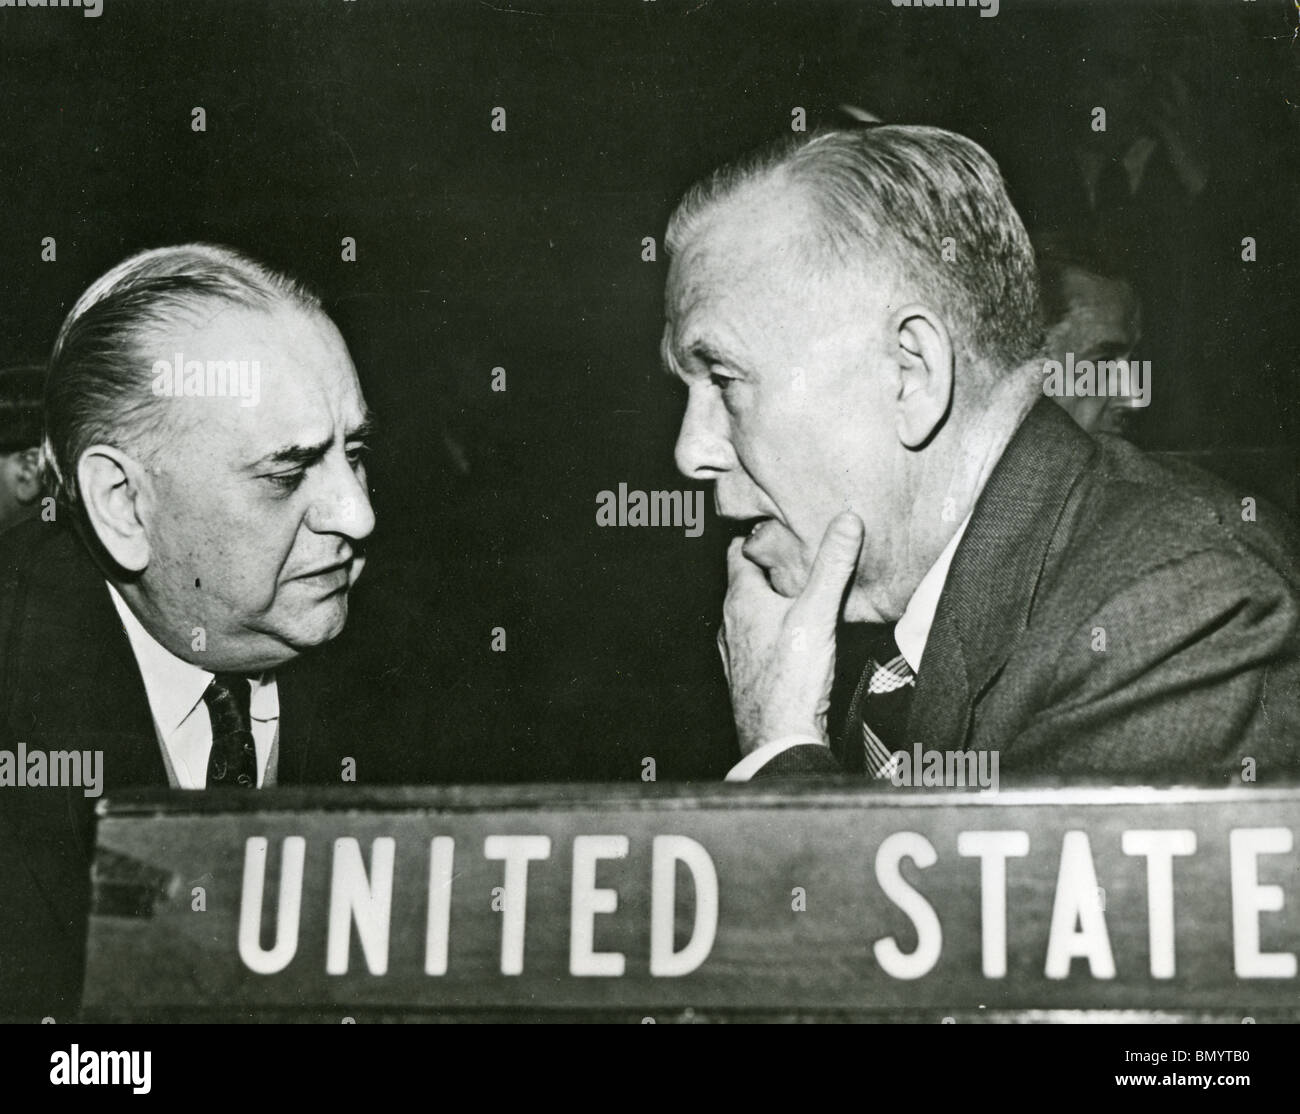 General george c marshall quotes - George C Marshall As Us Secretary Of State With Greek Prime Minisiter Konstantinos Tsaldaris At The